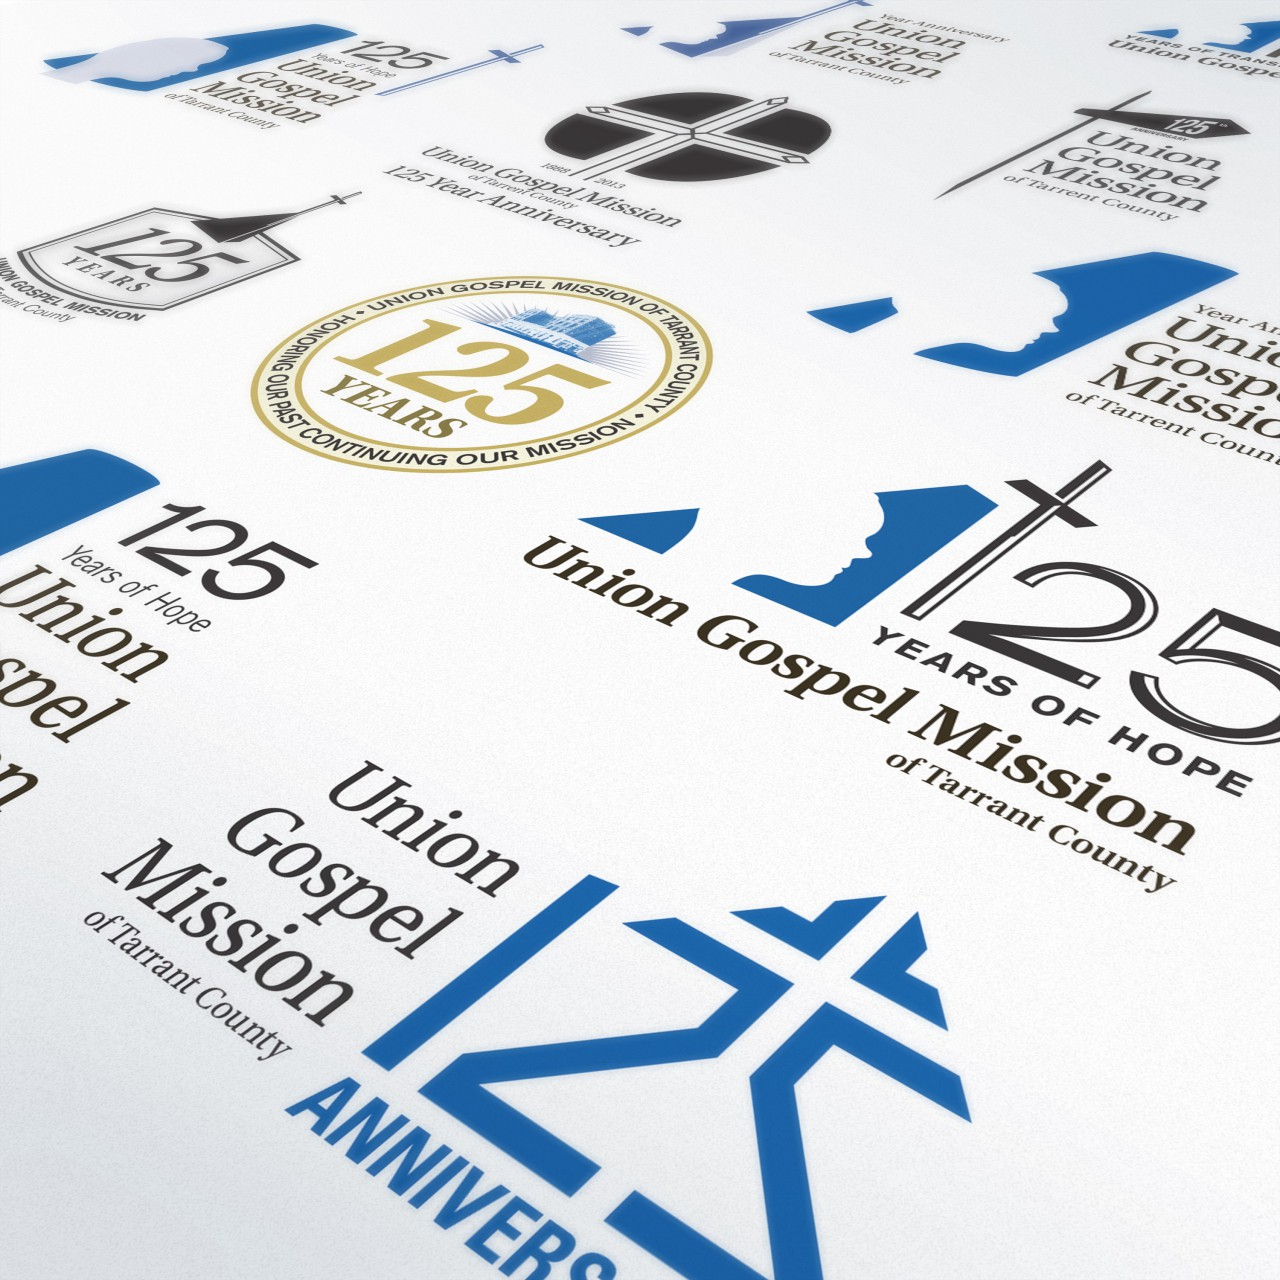 Image of Union Gospel Mission 125th Anniversary logo digital process concepts